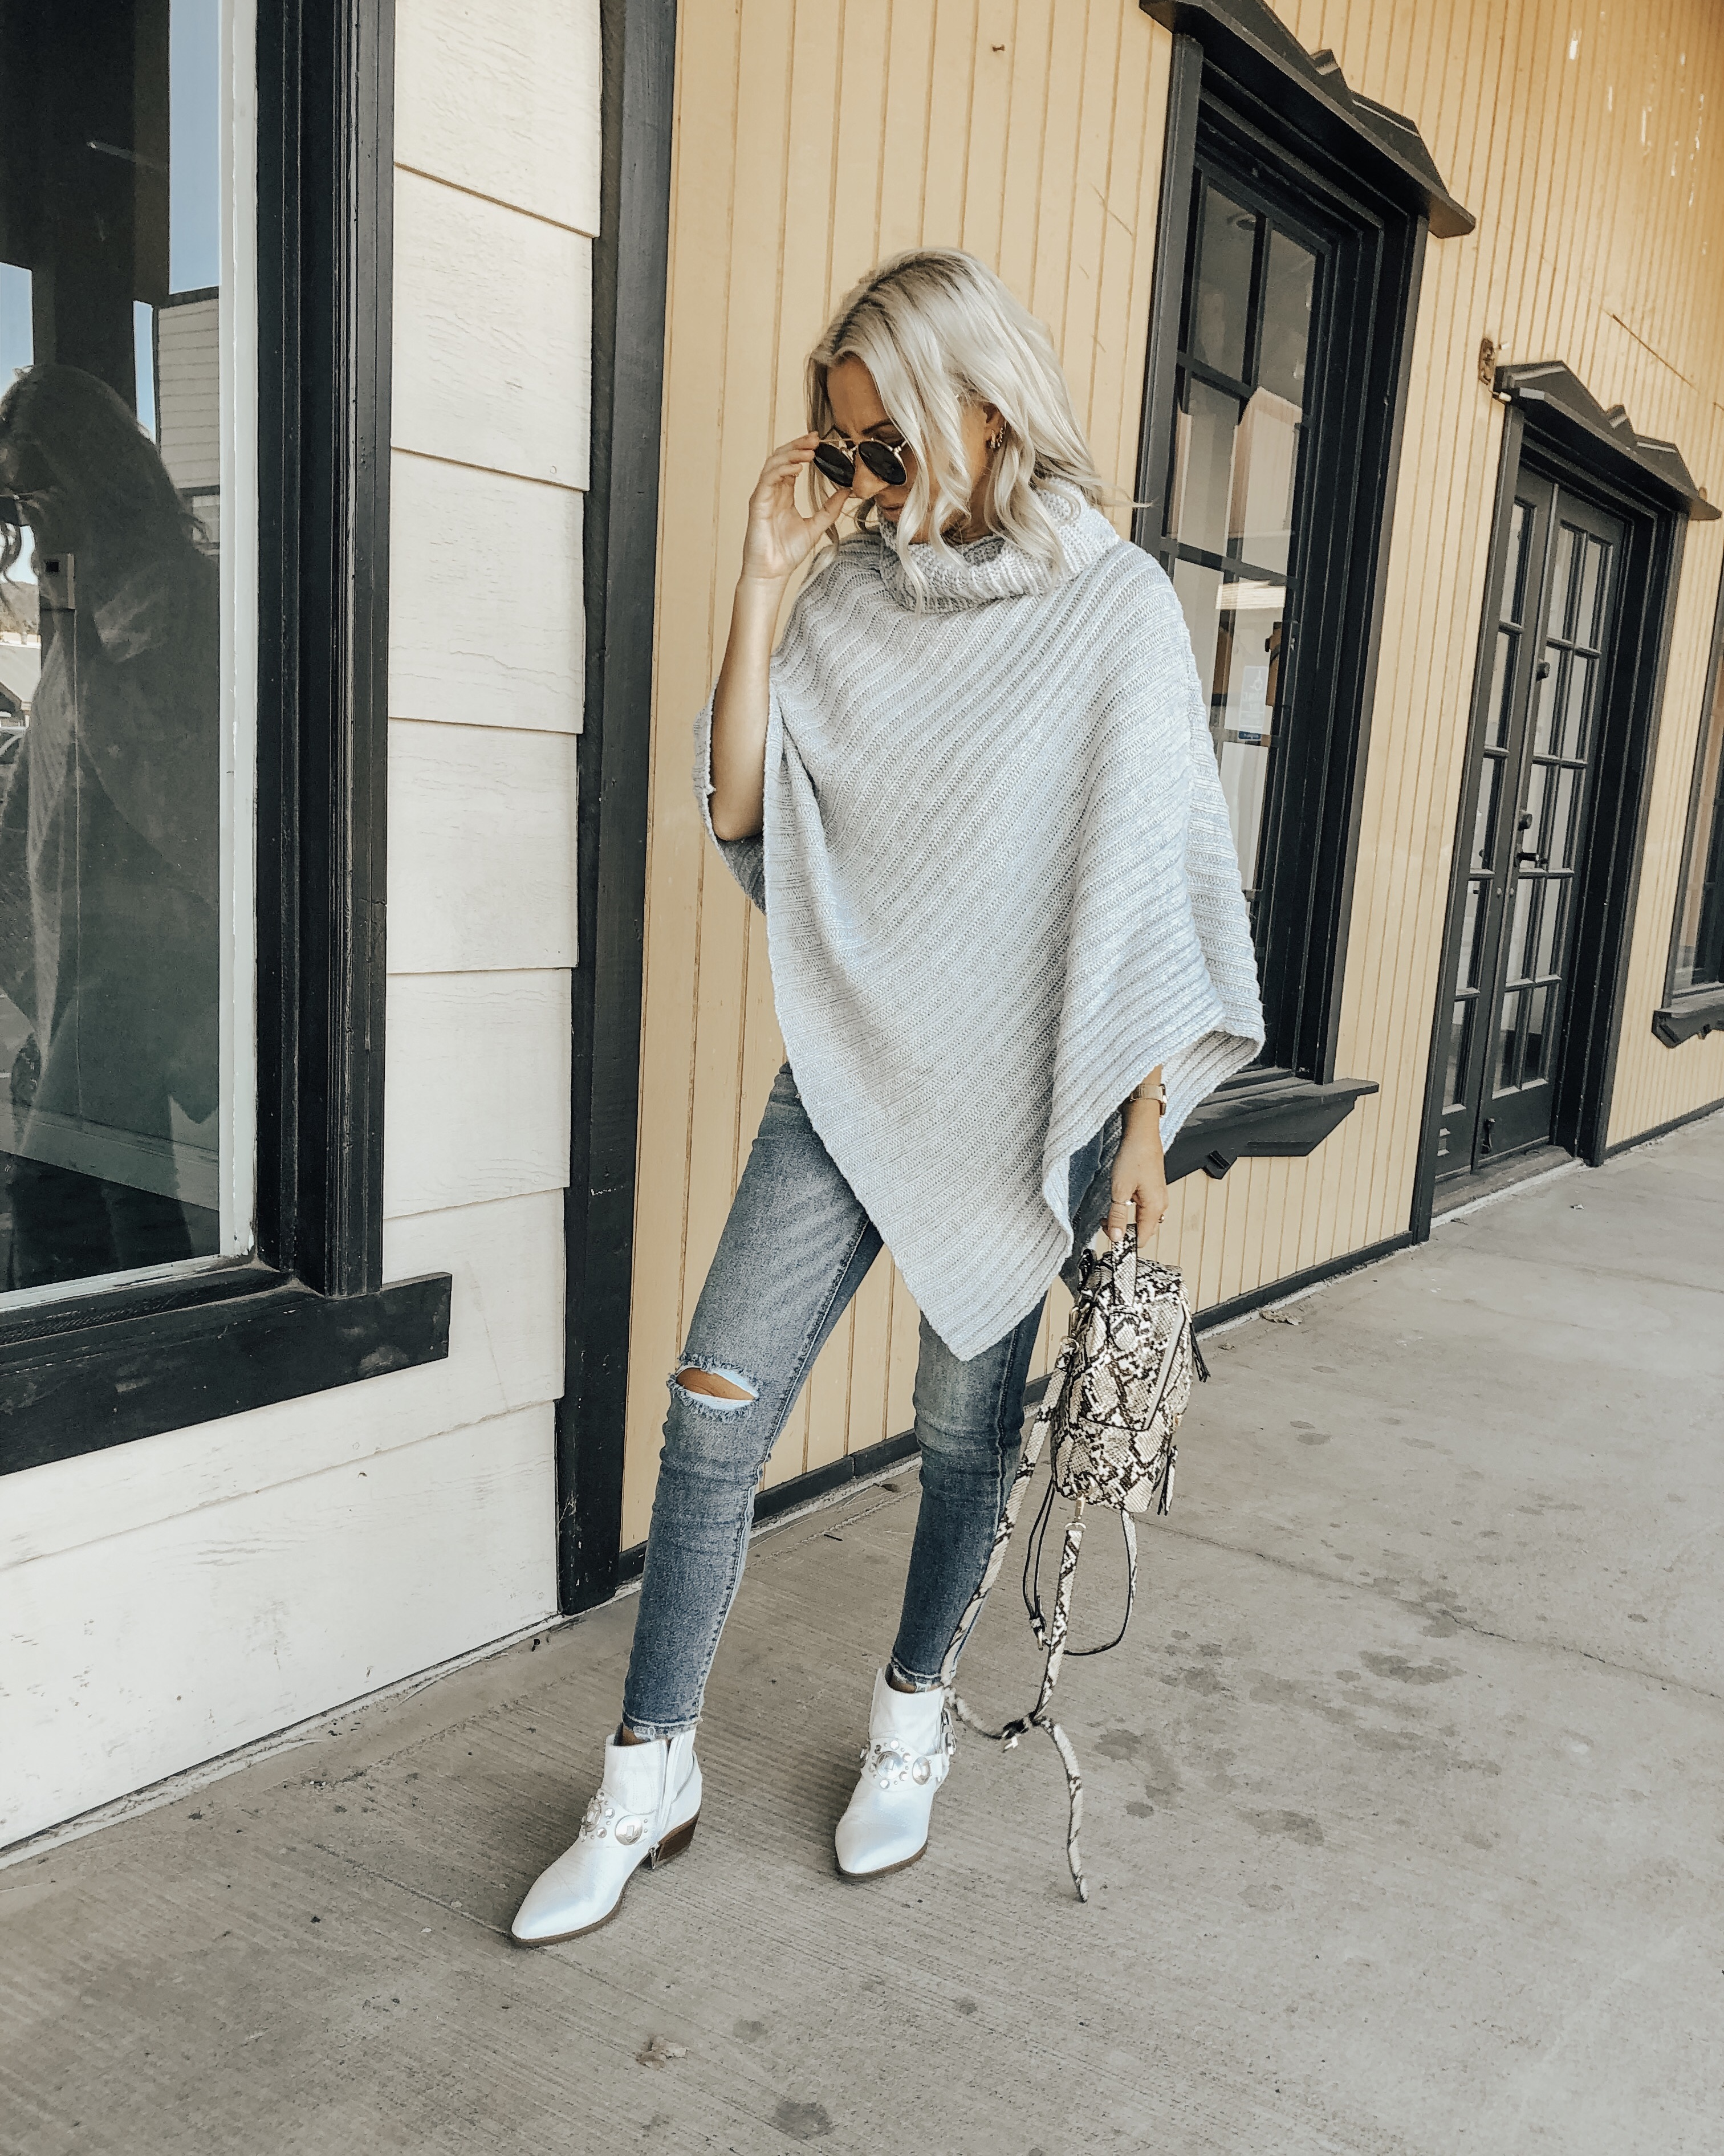 TREND ALERT: THE PONCHO SWEATER- Jaclyn De Leon Style + the poncho sweater trend is back in a big way! It's comfy + cozy and the perfect piece to throw over a top and jeans to completely update your look. This Amazon find is a must- have piece